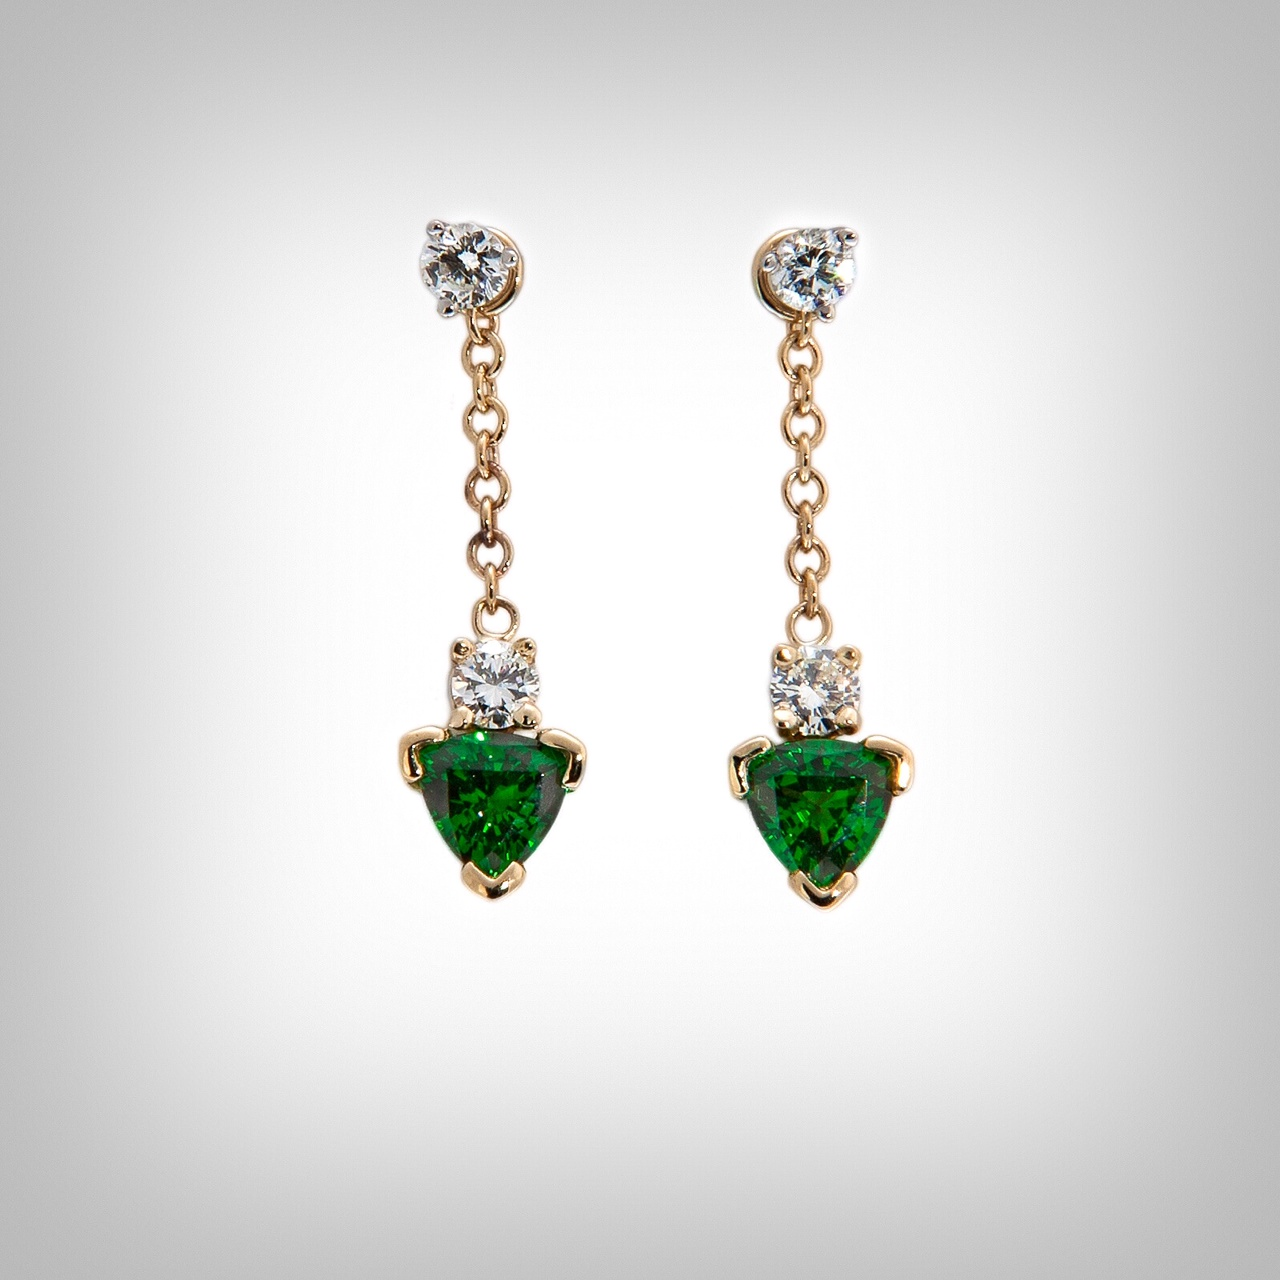 Tsavorite garnet and diamond drop earrings